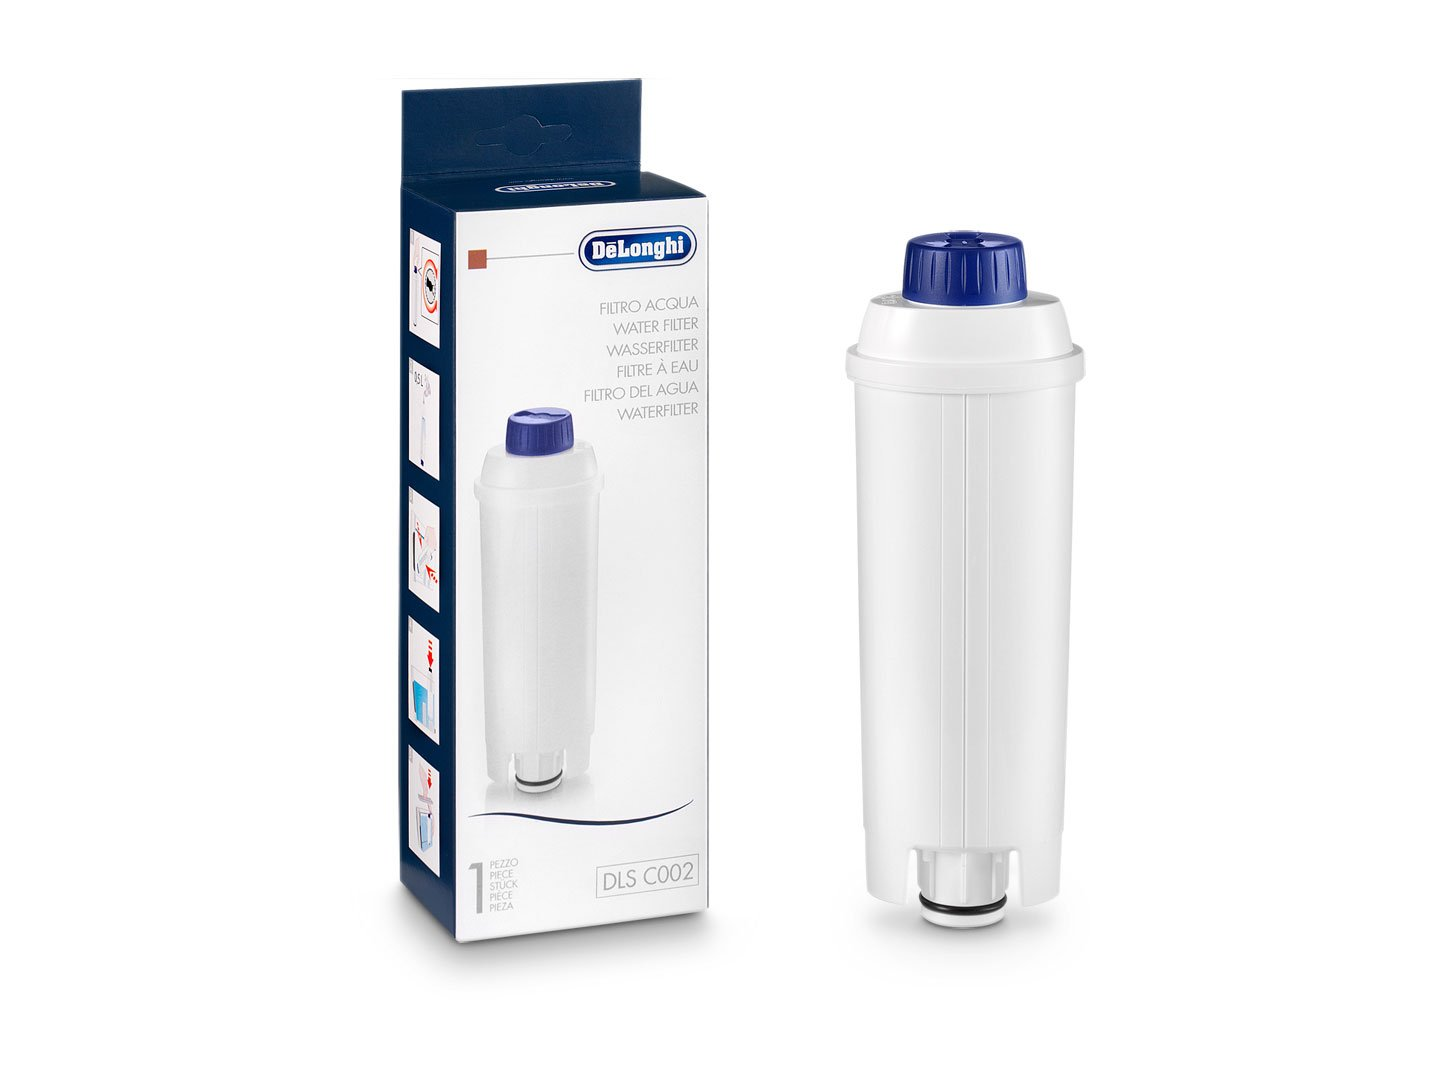 61pil43 cLL._SL1440_ amazon com delonghi coffee machine water filter kitchen products  at bayanpartner.co